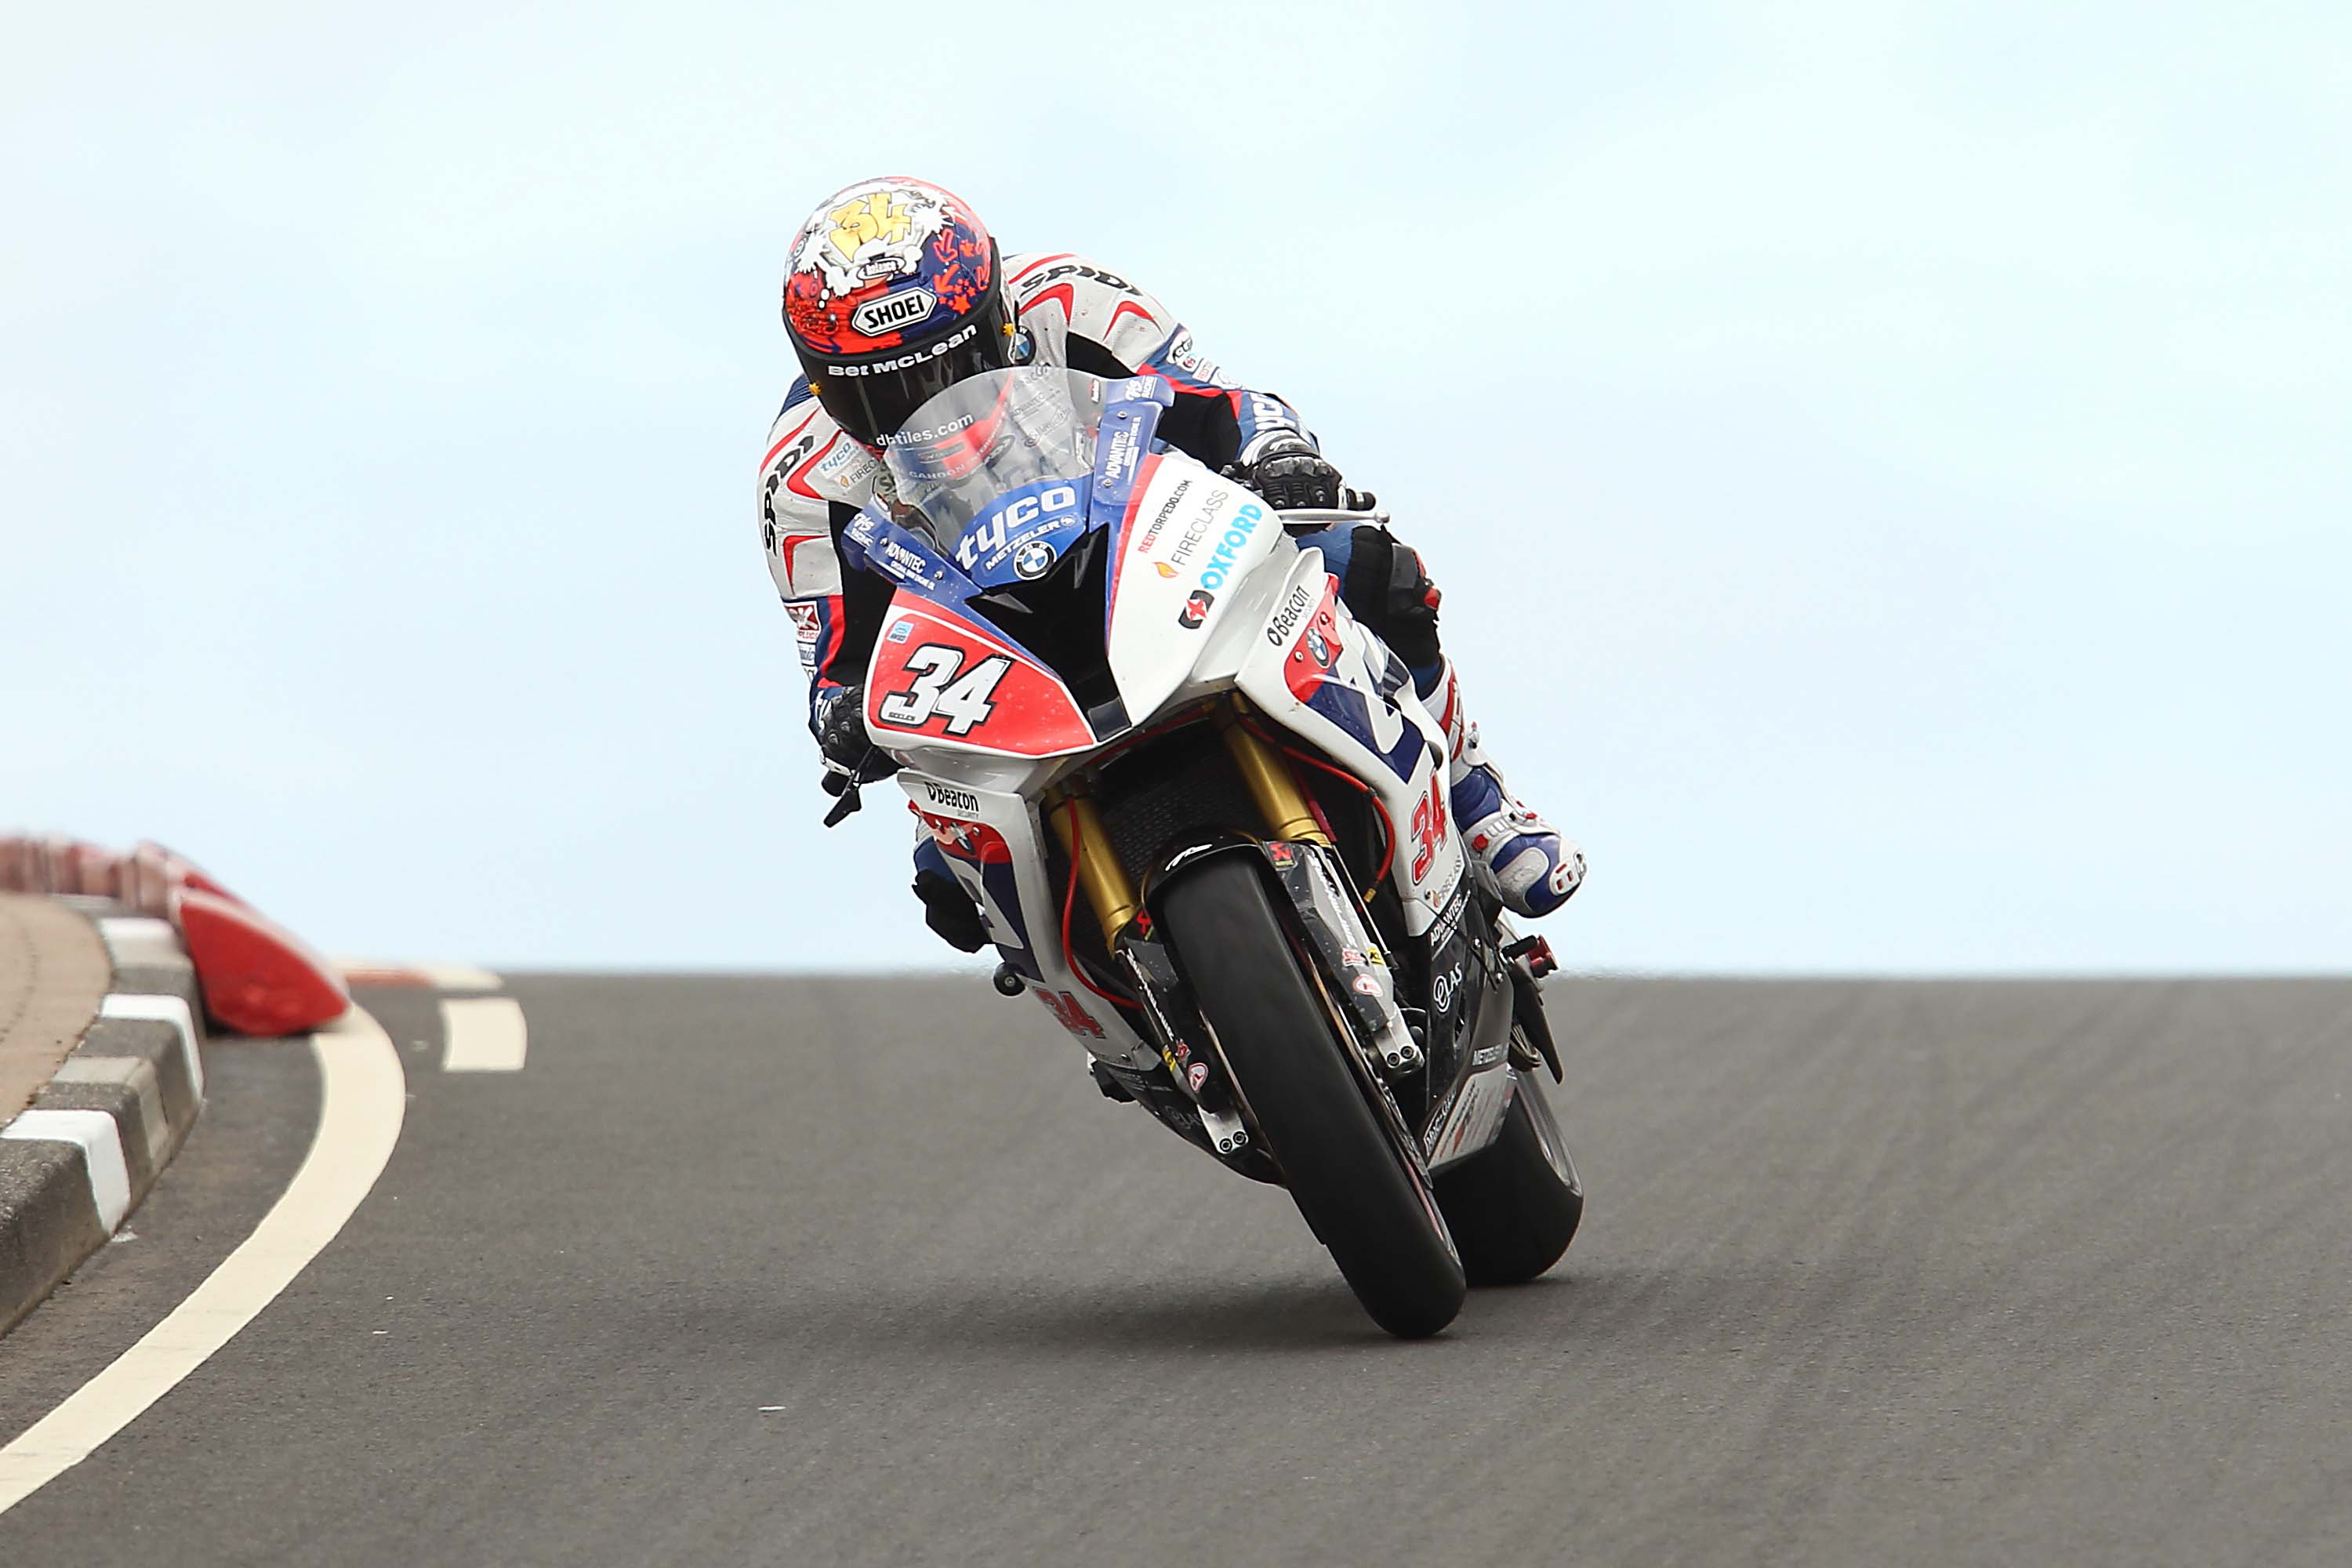 Alastair-Seeley-North-West200-superbike-1